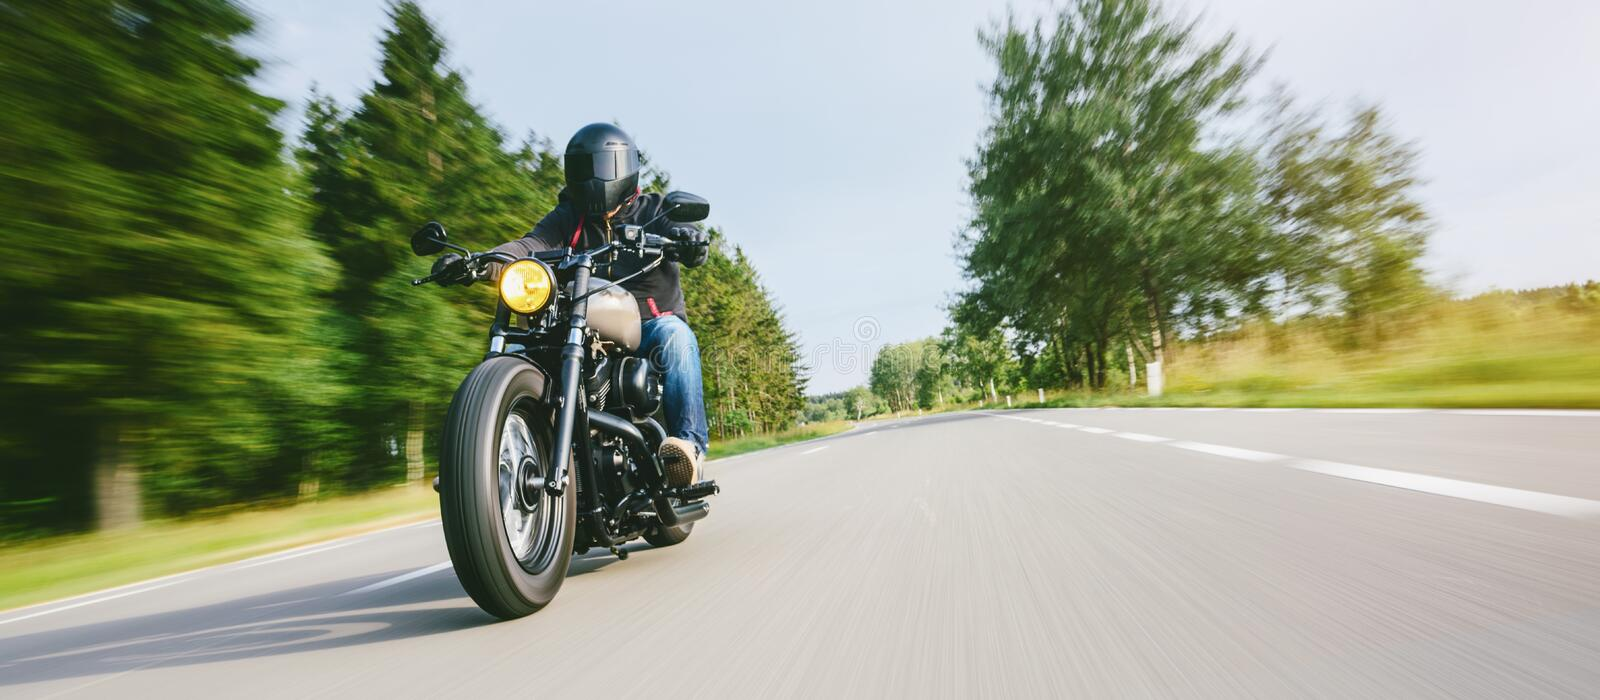 Motorbike on the road riding. having fun riding the empty road on a motorcycle tour / journey royalty free stock image